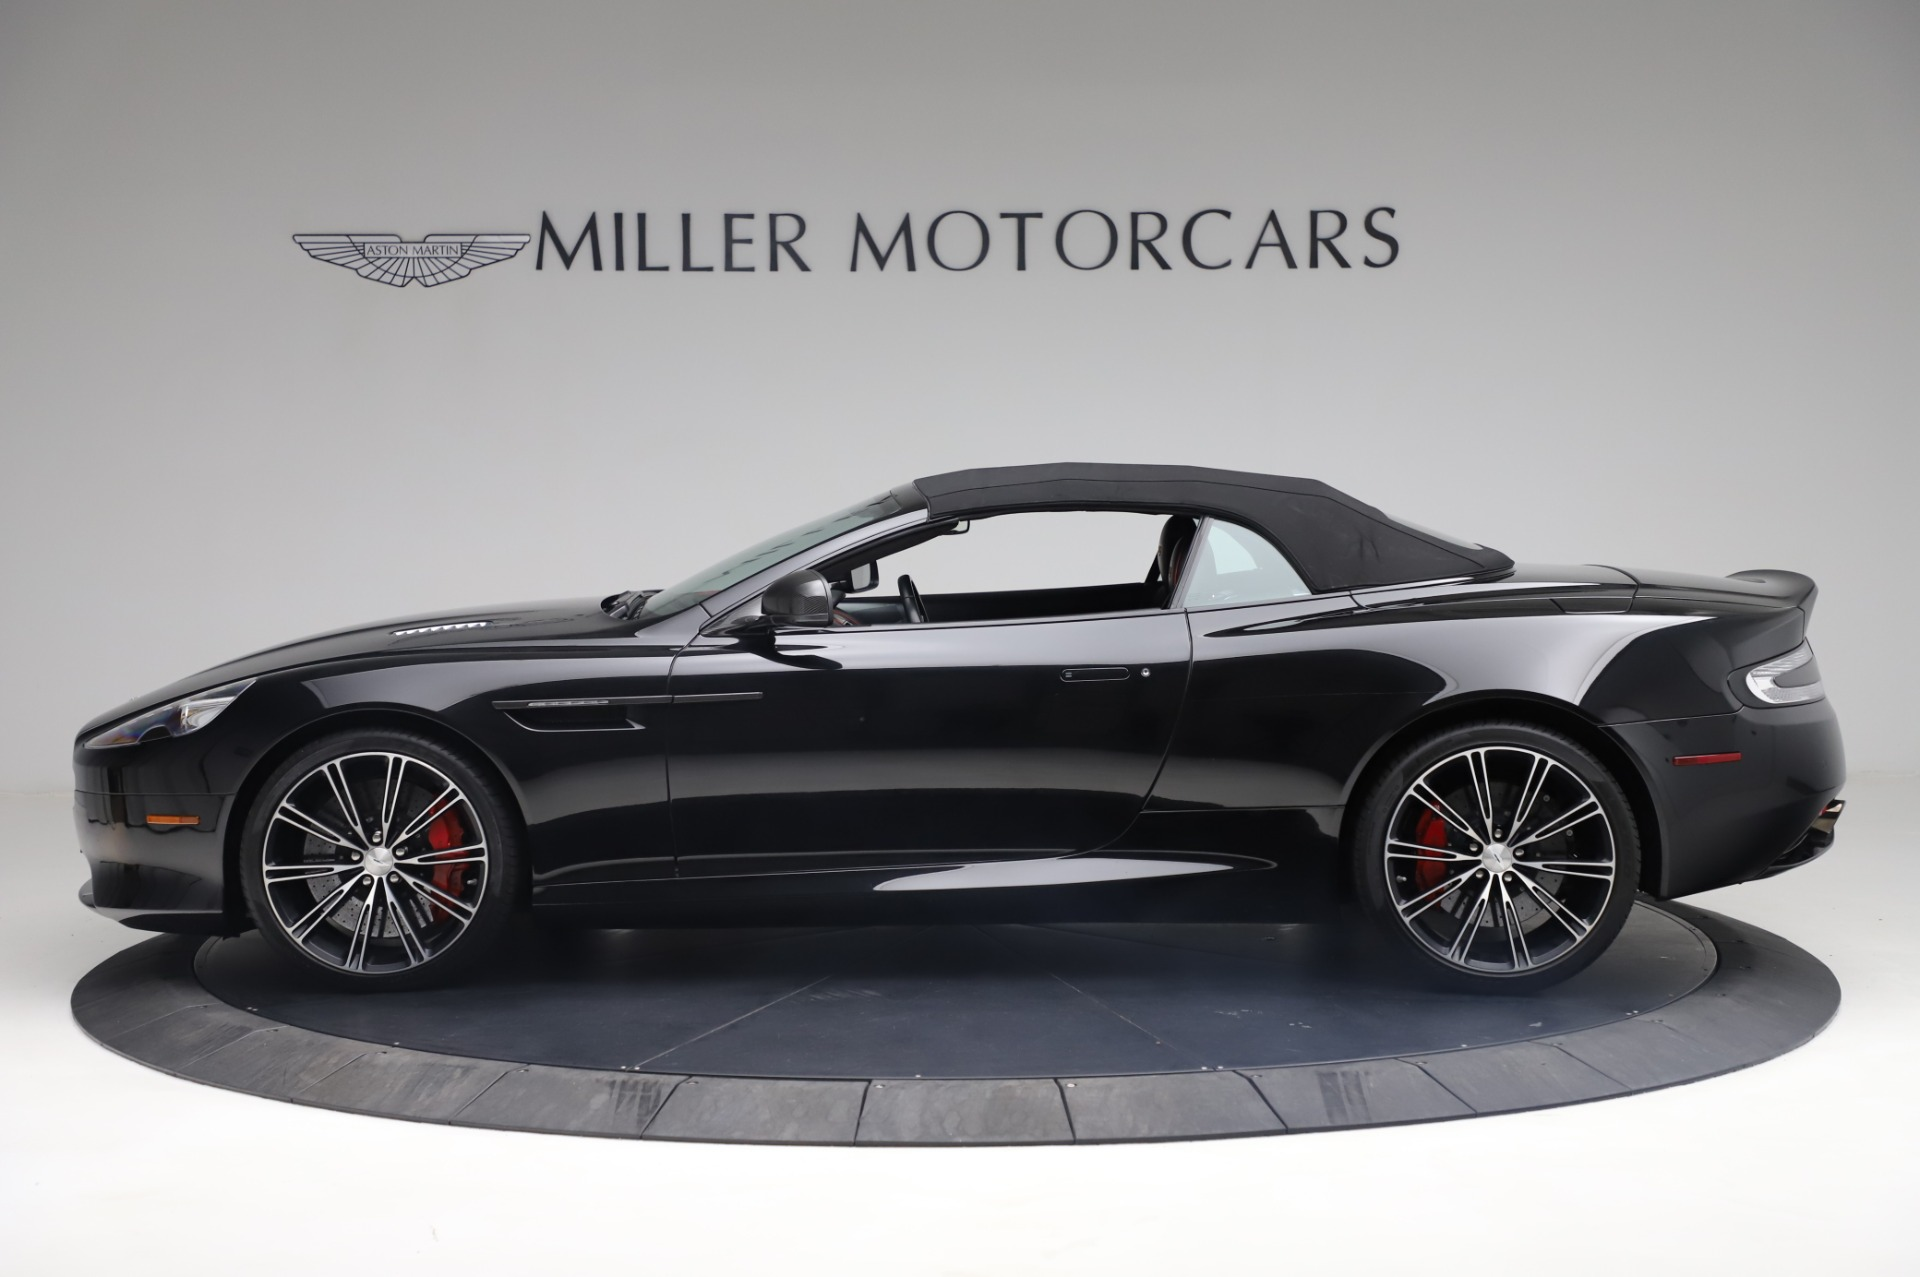 Used 2015 Aston Martin DB9 Carbon Edition Volante For Sale In Westport, CT 1919_p14